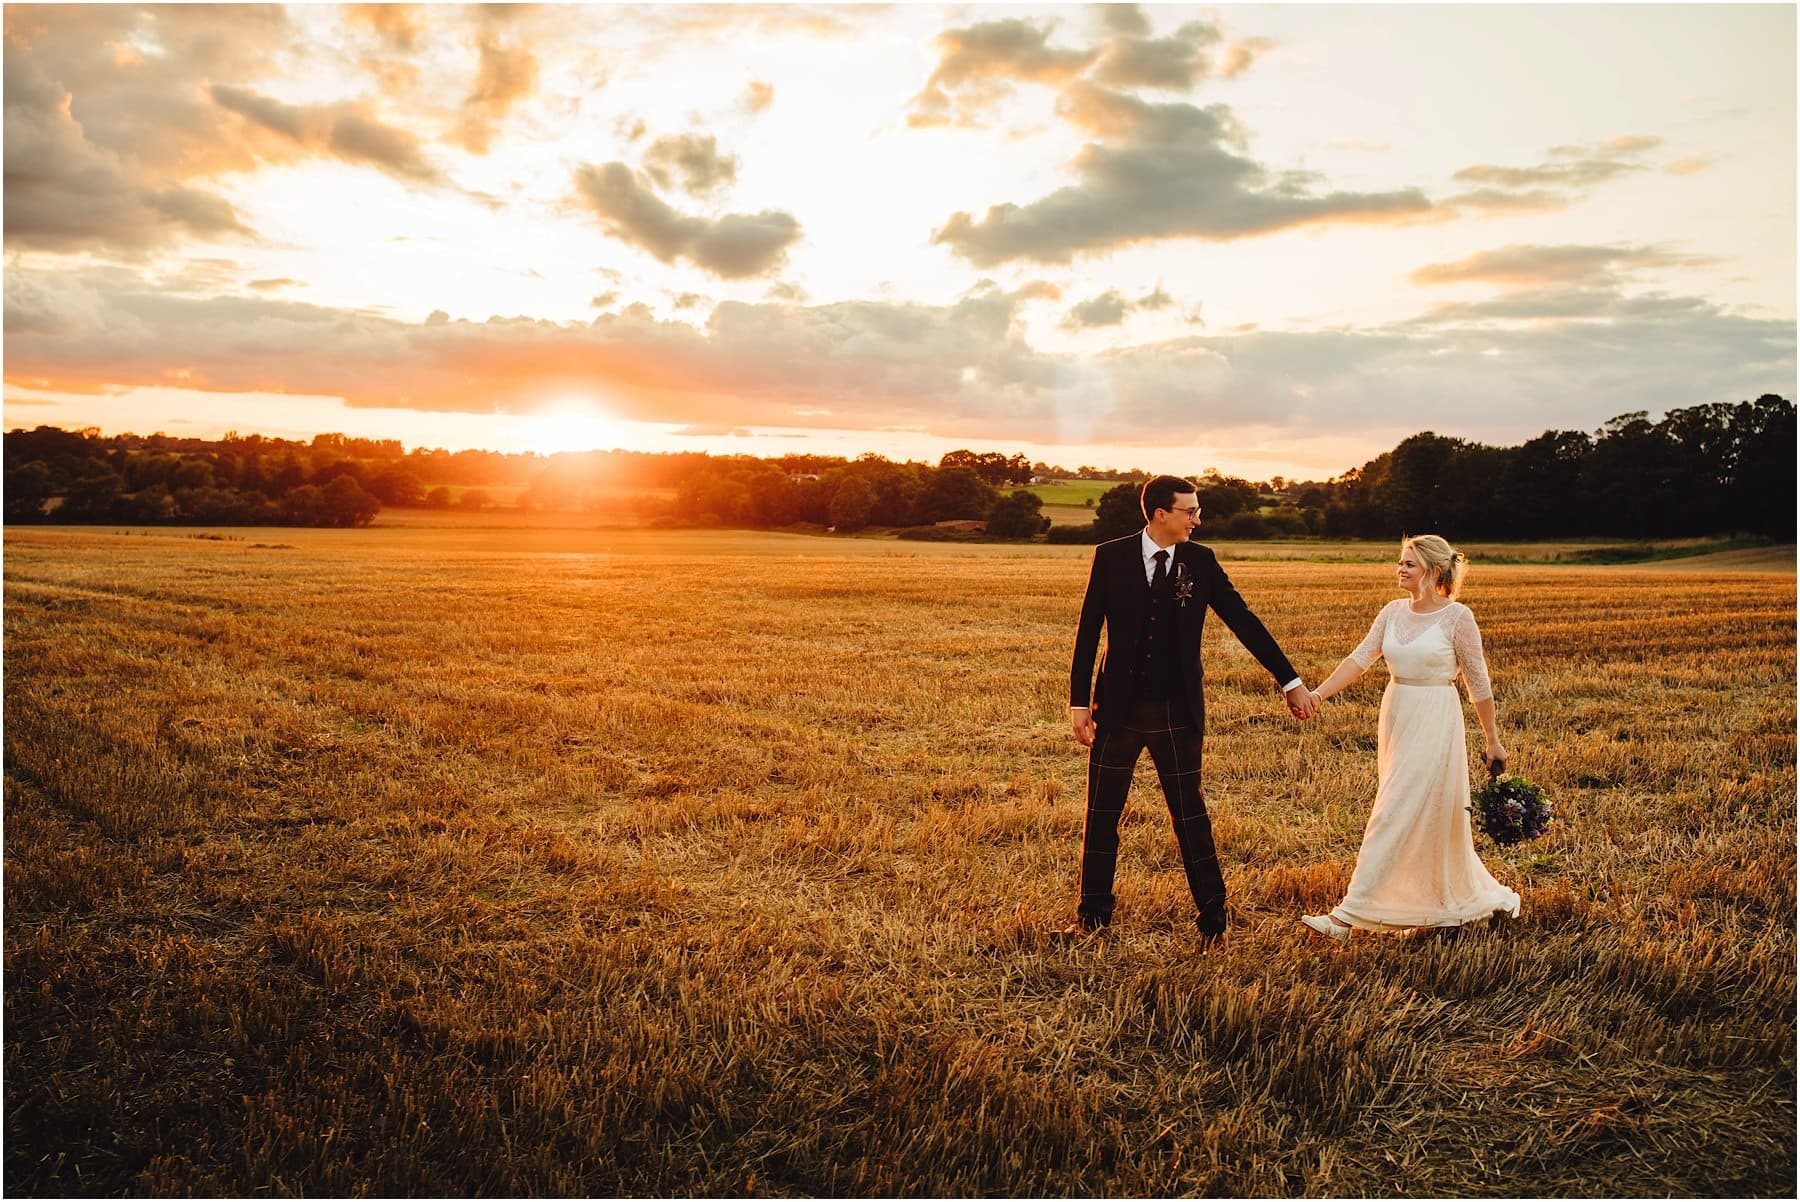 bride and groom walking across a field during sunset